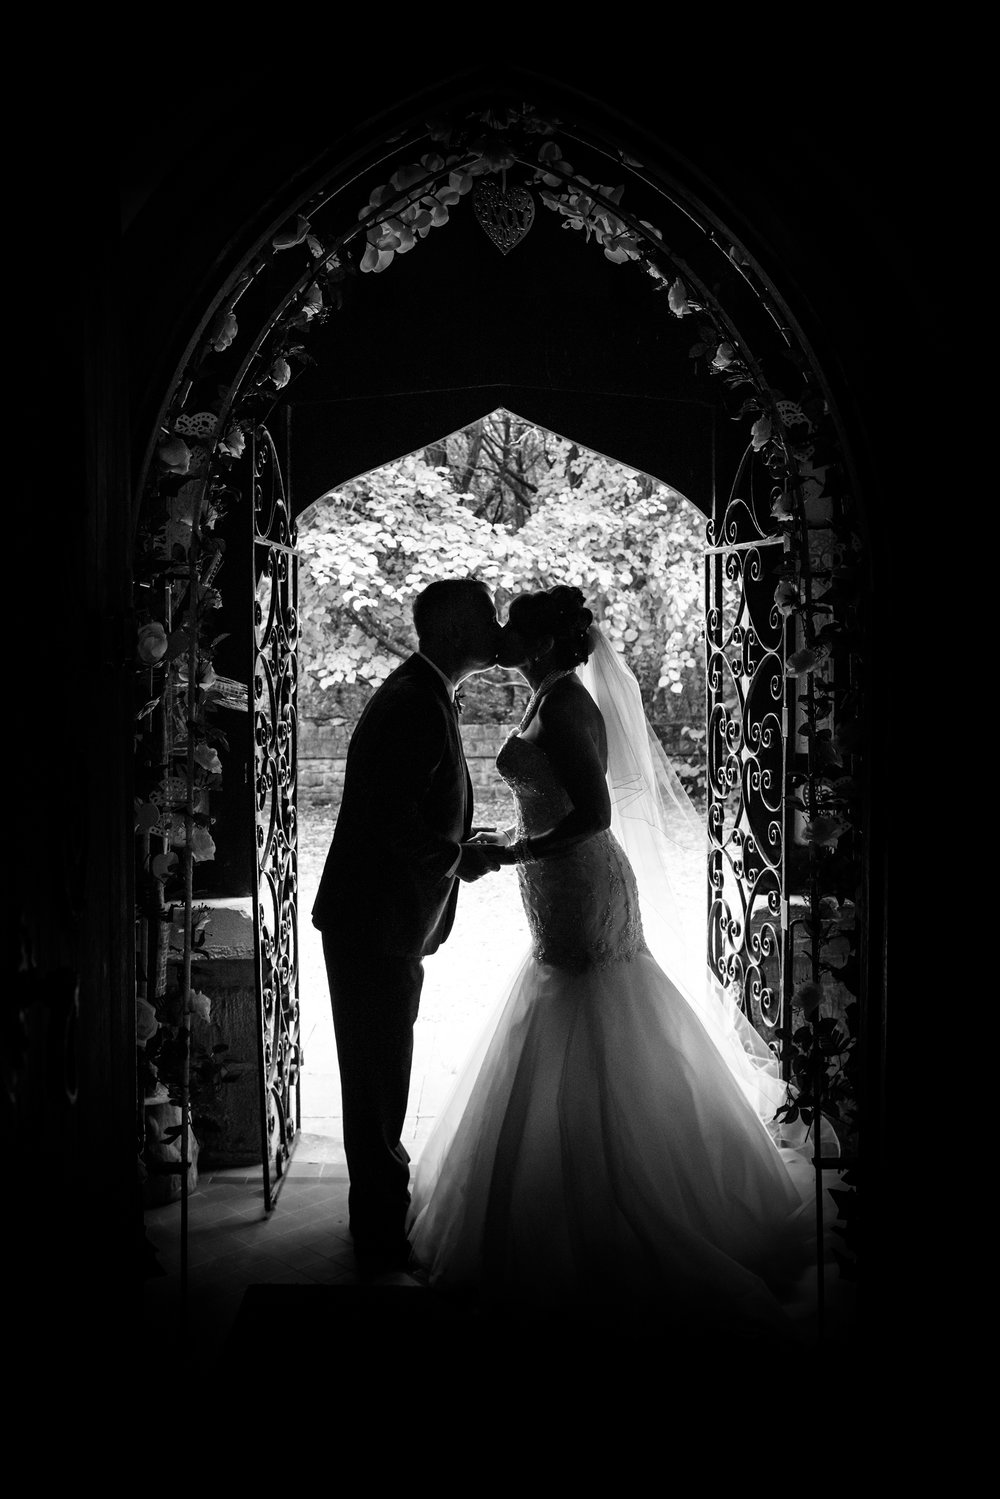 Bride and Groom Silhouette Black & White